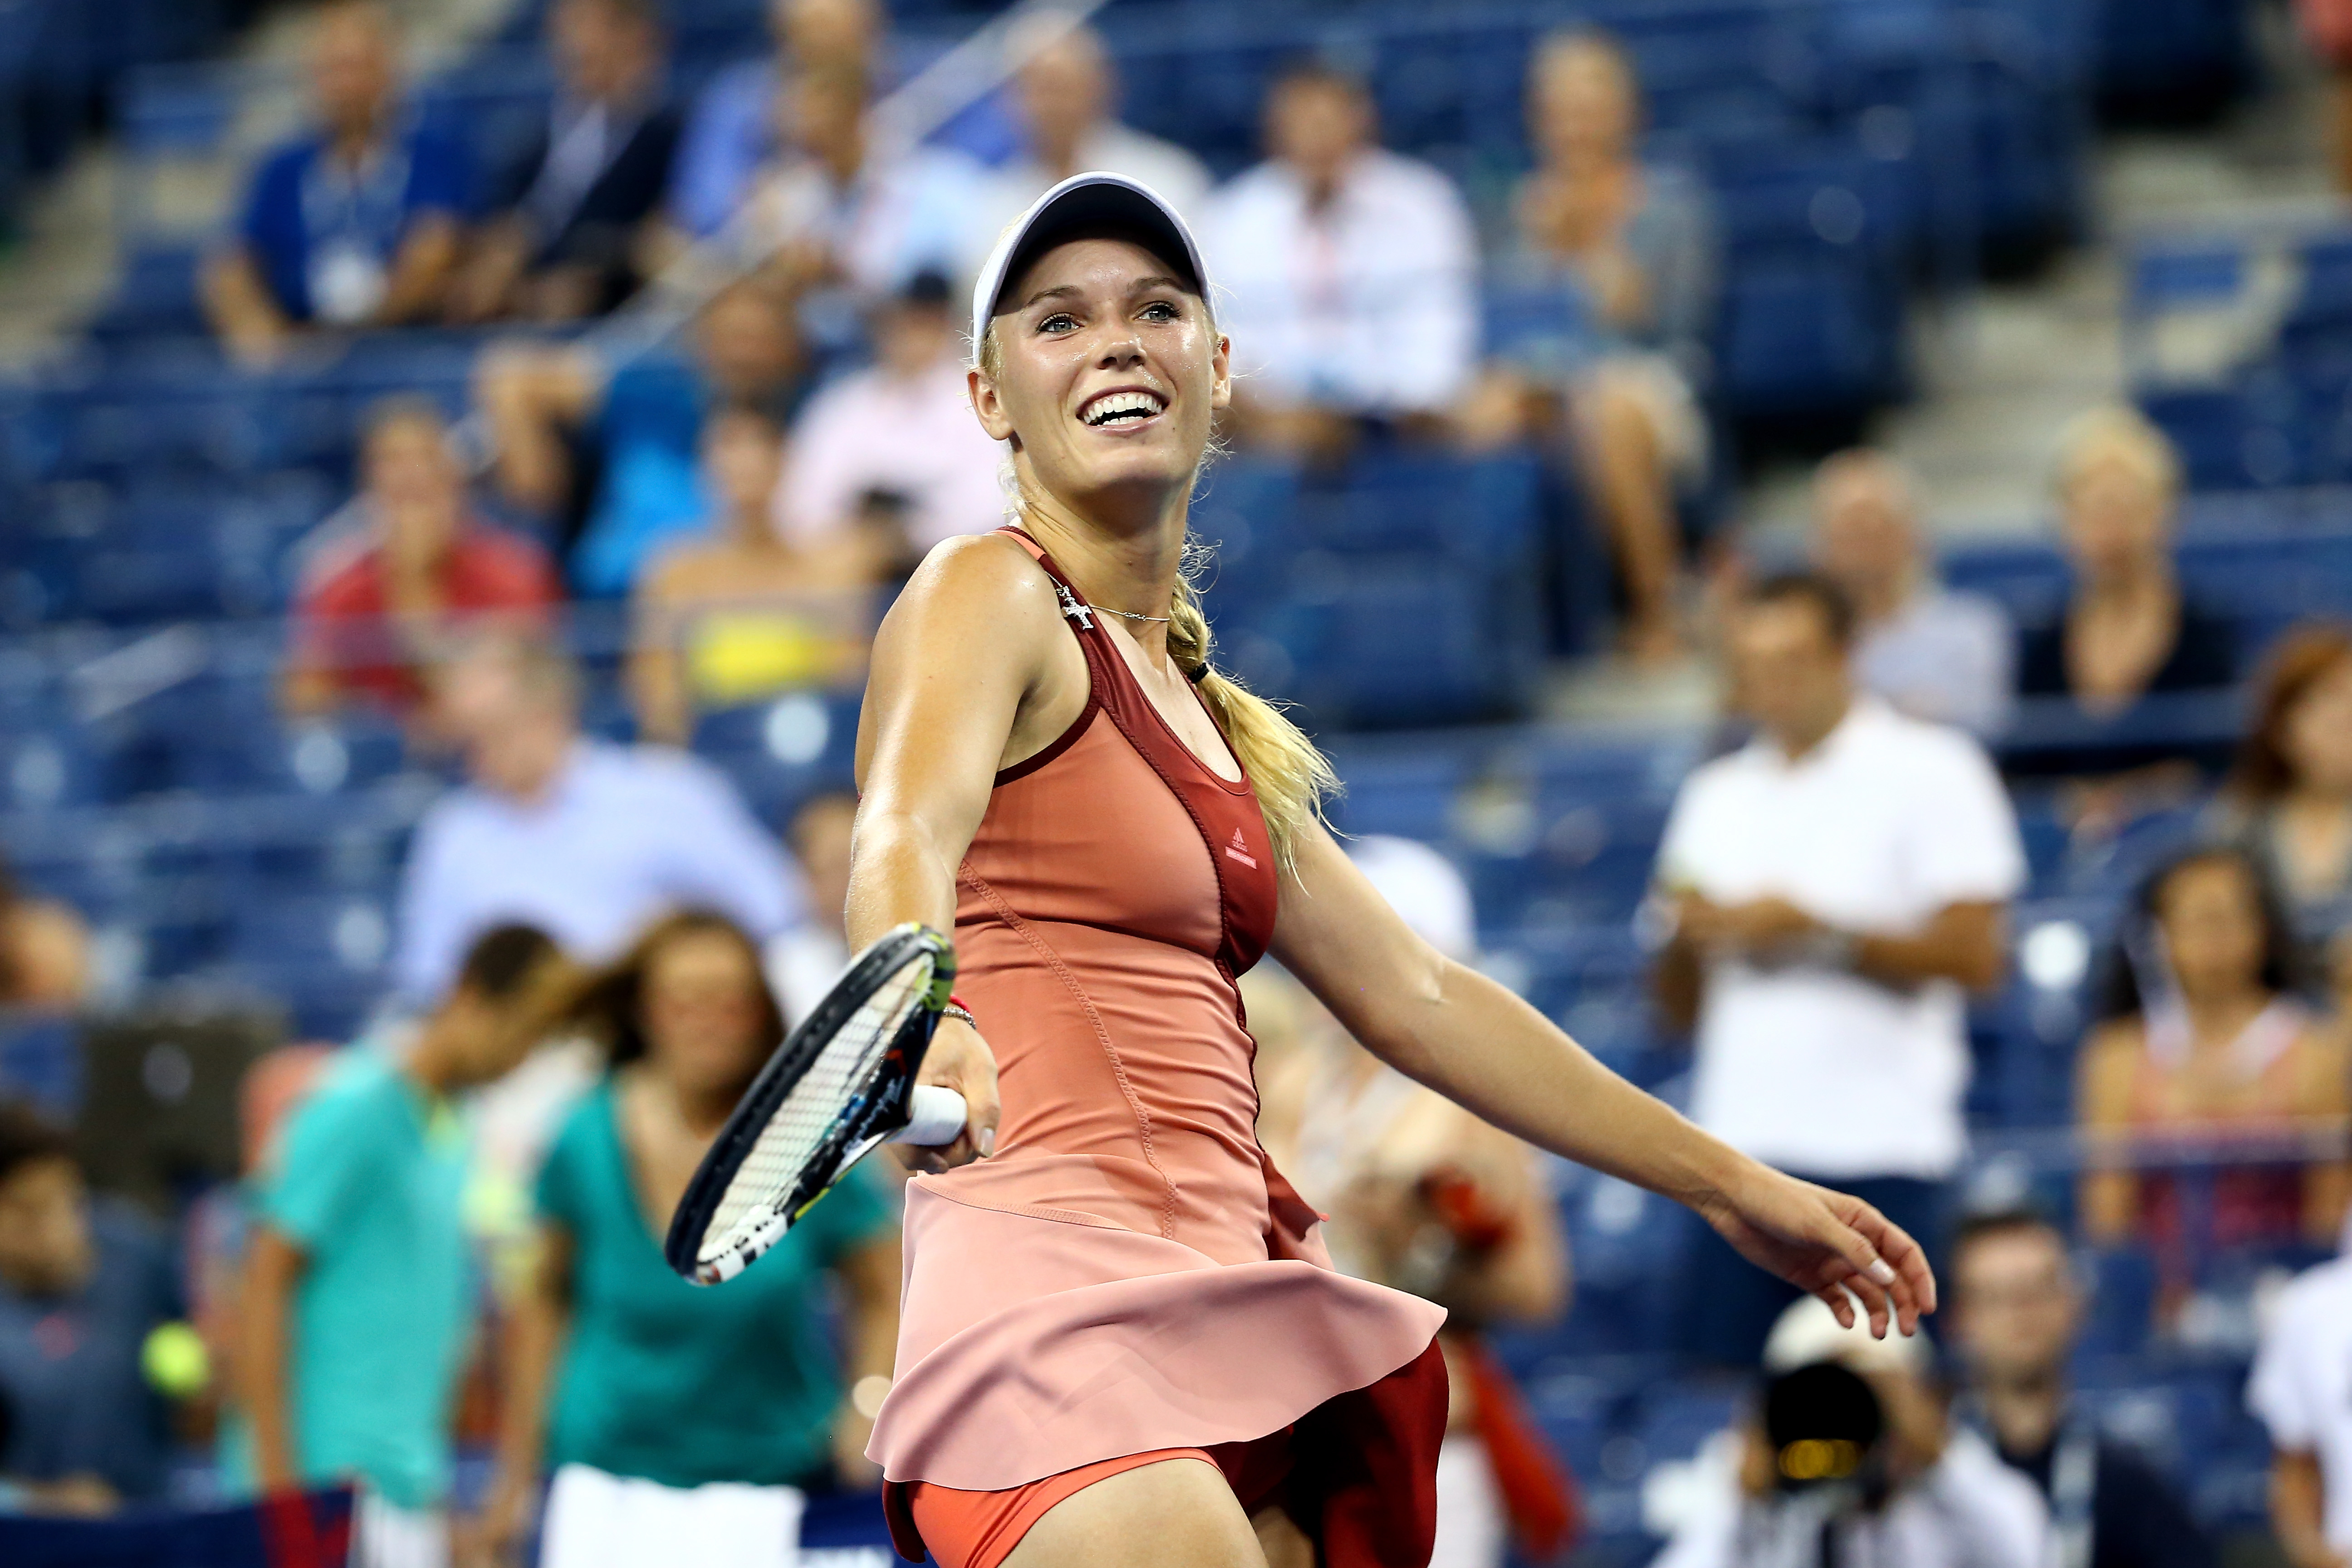 <b>Caroline Wozniacki</b> In November 2010, 20-year-old Caroline Wozniacki surged past Serena Williams to grab the No. 1 ranking — and she held tight. The daughter of Polish immigrants to Denmark, she speaks six languages — including Russian and Swedish — and keeps busy off the court by playing the piano and baking with her mom.